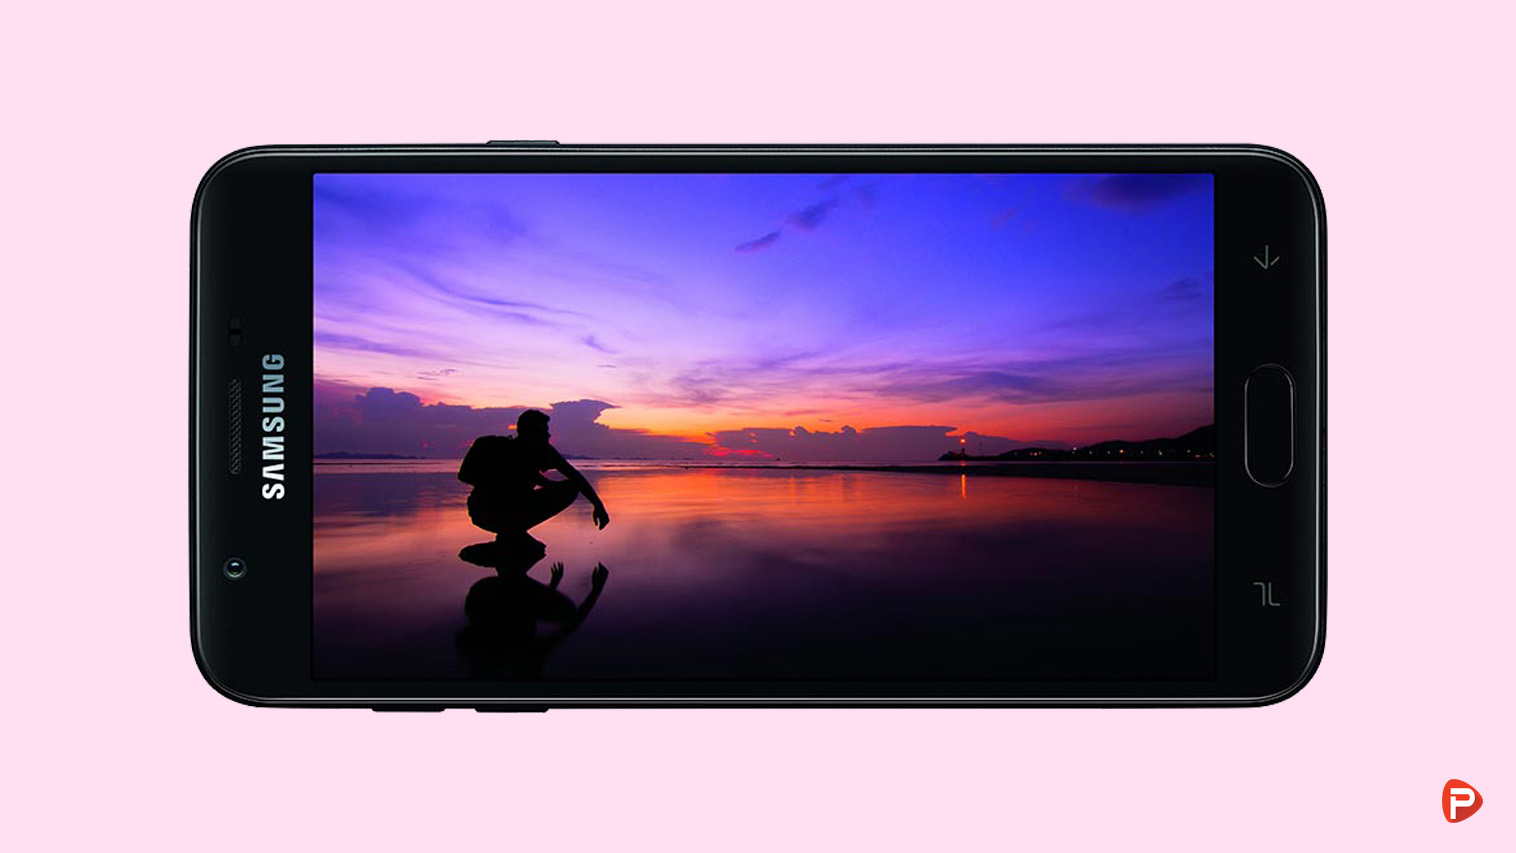 Samsung Galaxy J7 2018 officially launched